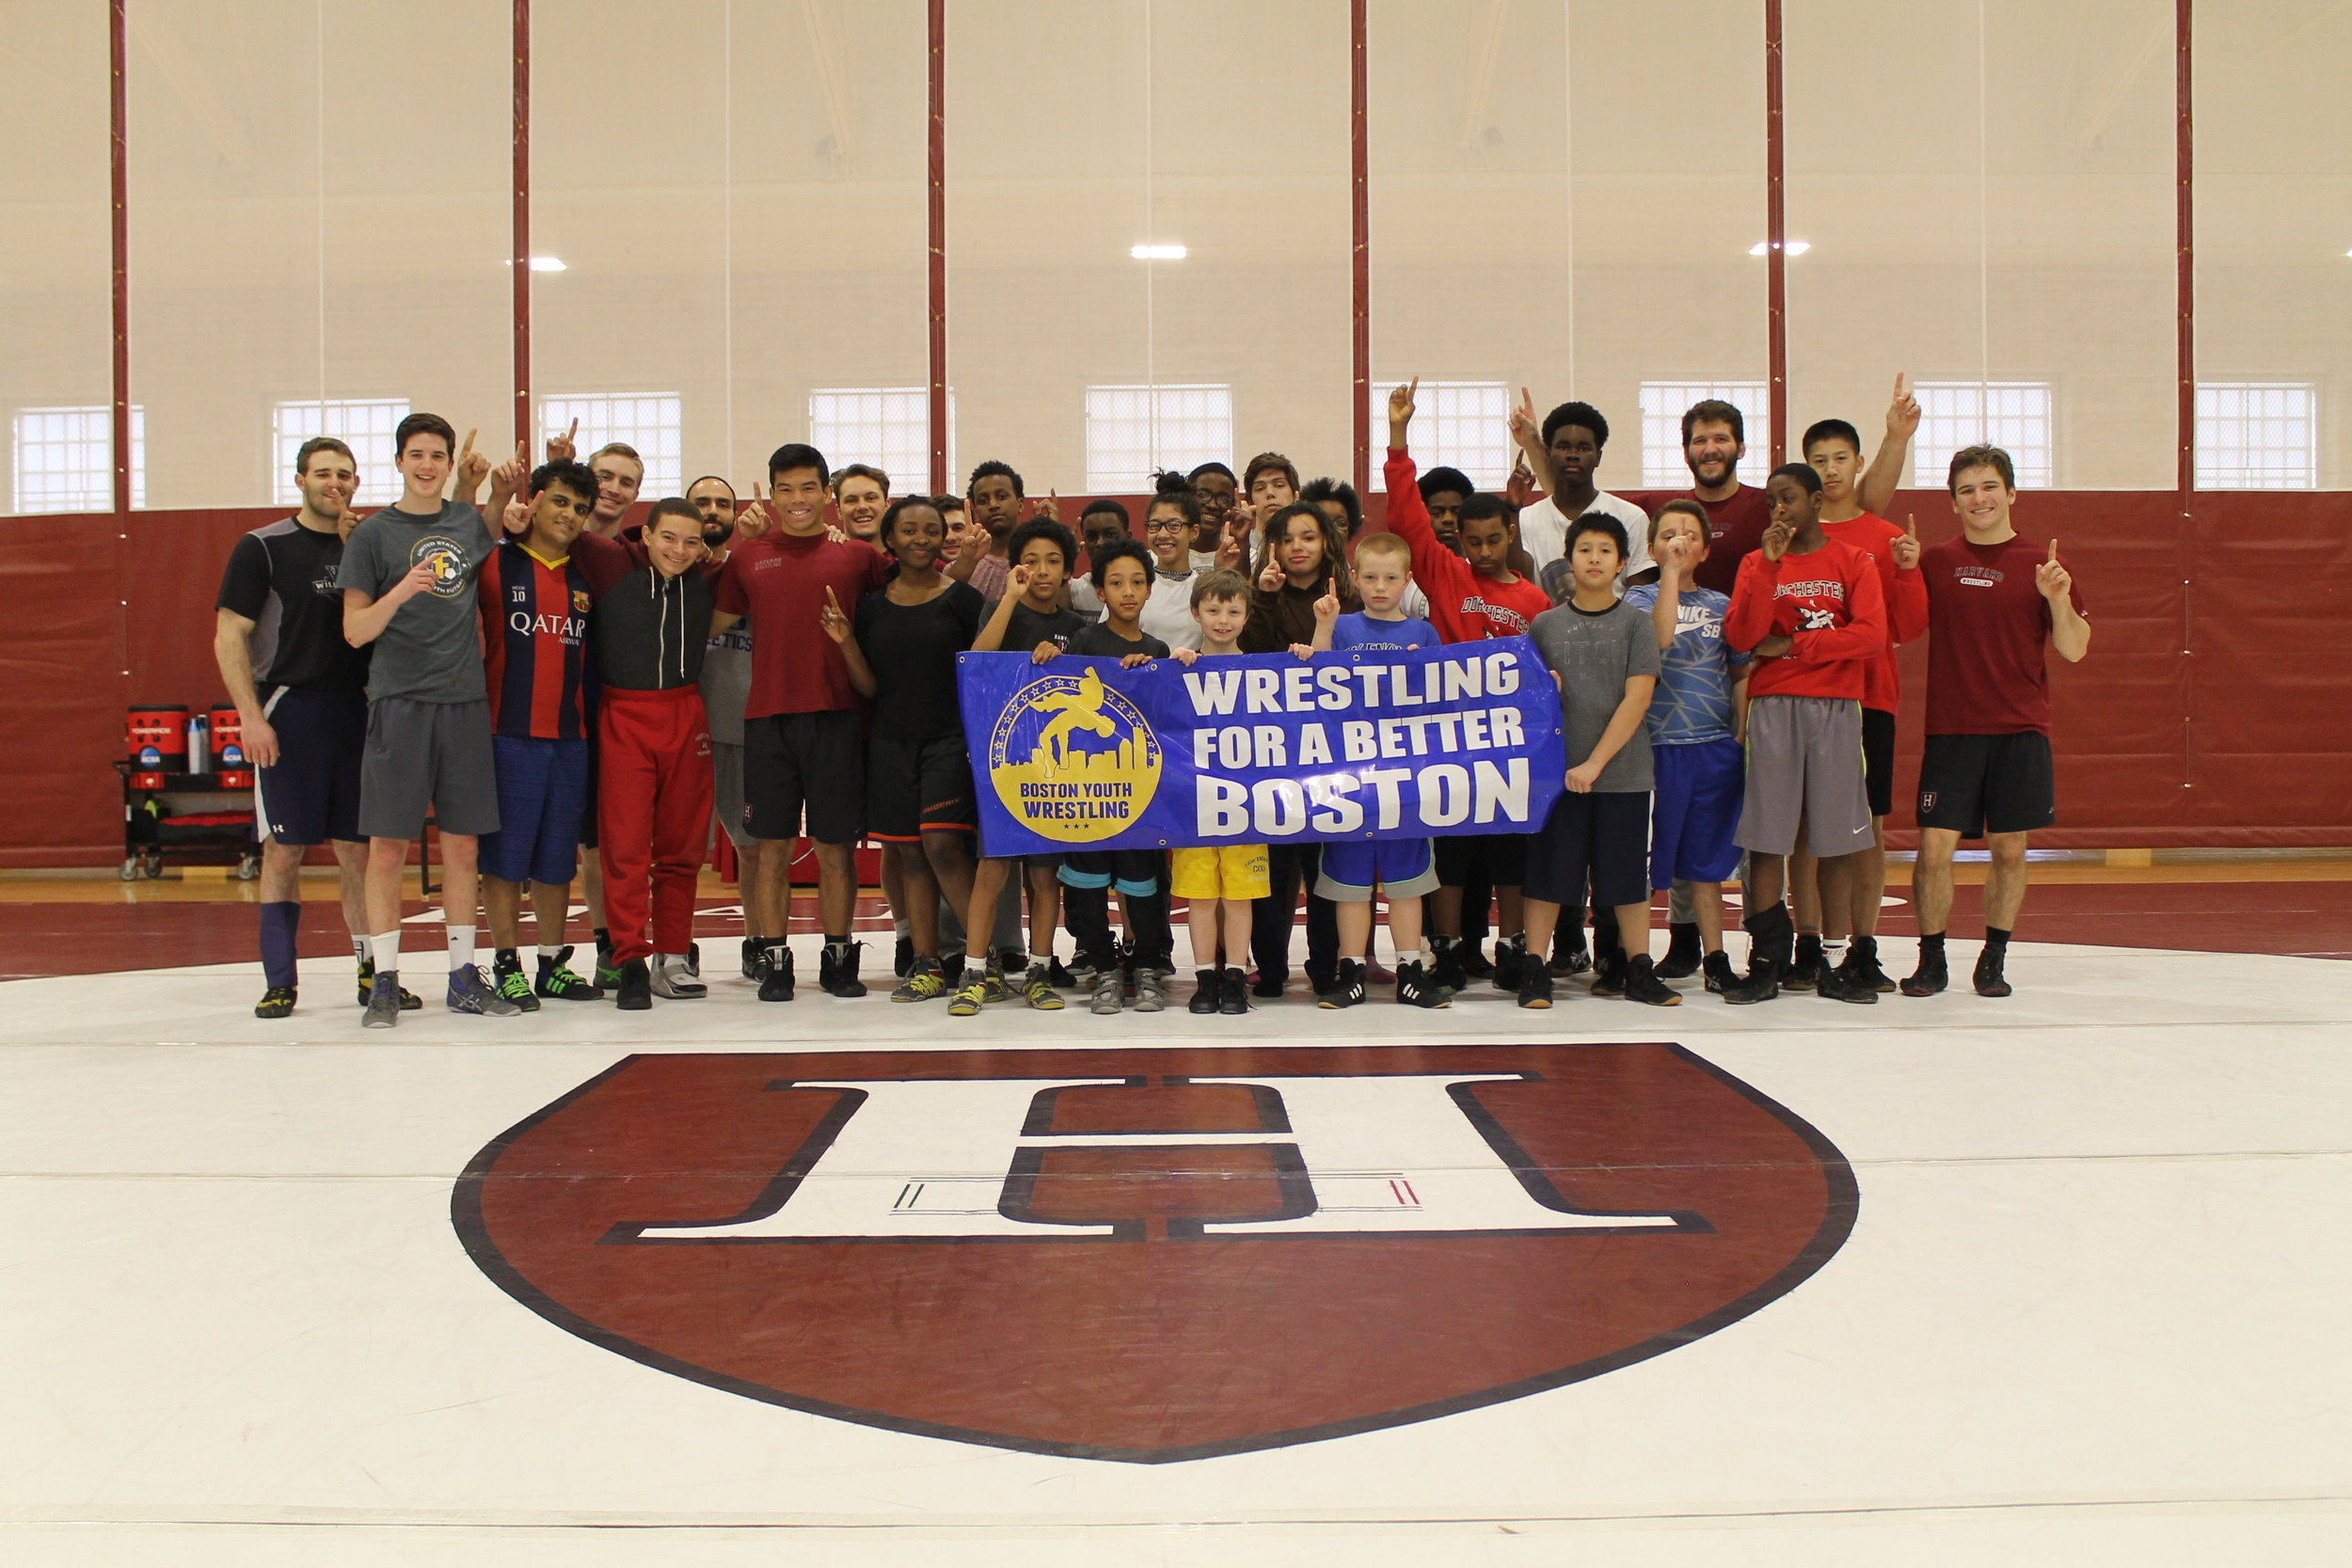 BYW student-athletes gather together alongside some of the Harvard Wrestling team's wrestlers and coaching staff for a picture at the Maklin Athletic Center in Cambridge, MA.